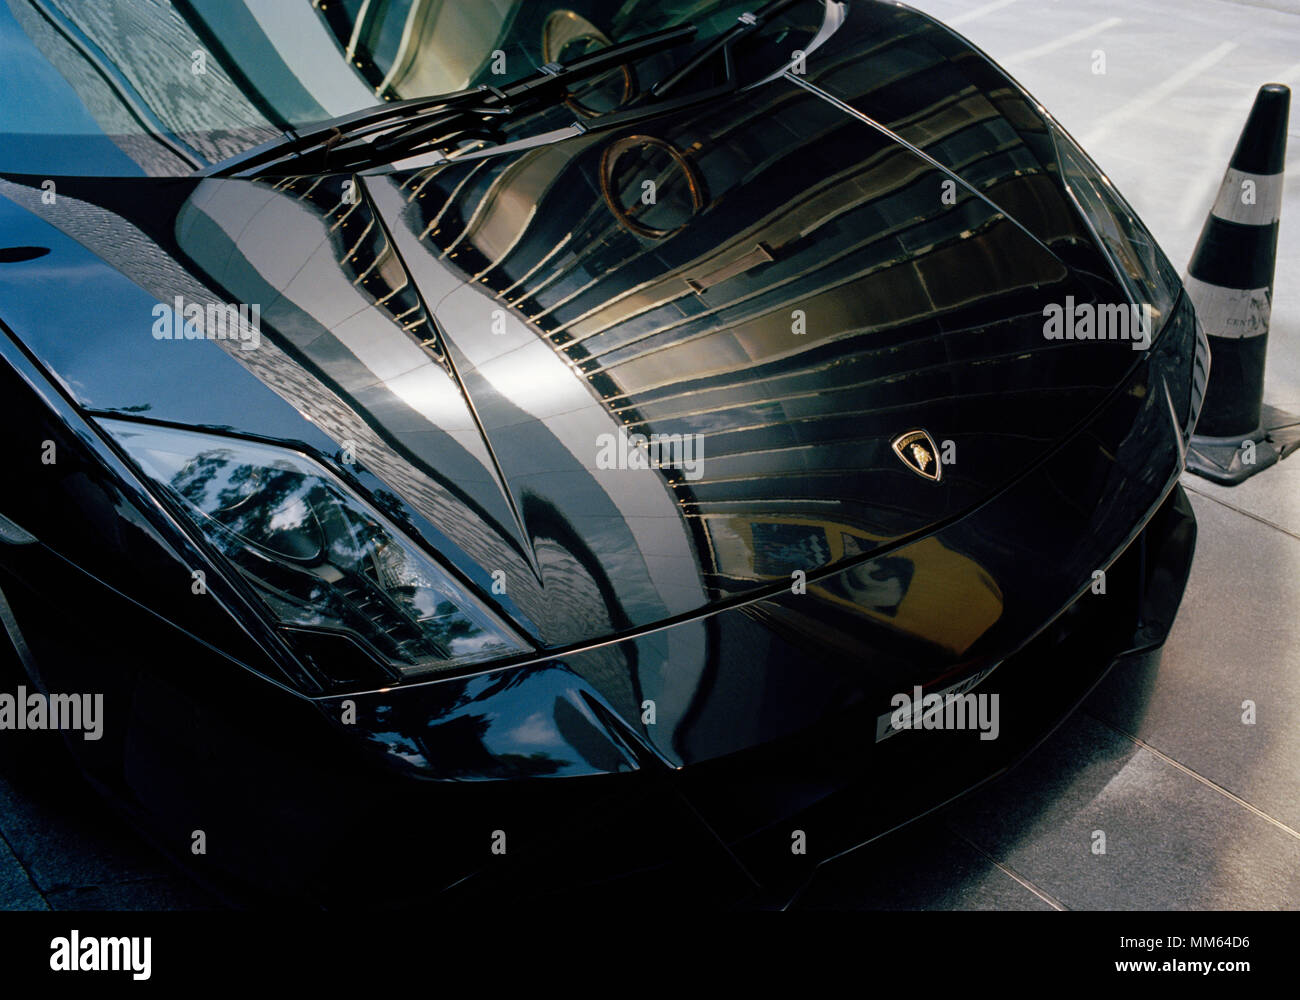 Transport - Classic Super Car - Lamborghini in Sukhumvit in Bangkok in Thailand in Southeast Asia Far East. Cars Money Wealth Wealthy Rich Lifestyle - Stock Image